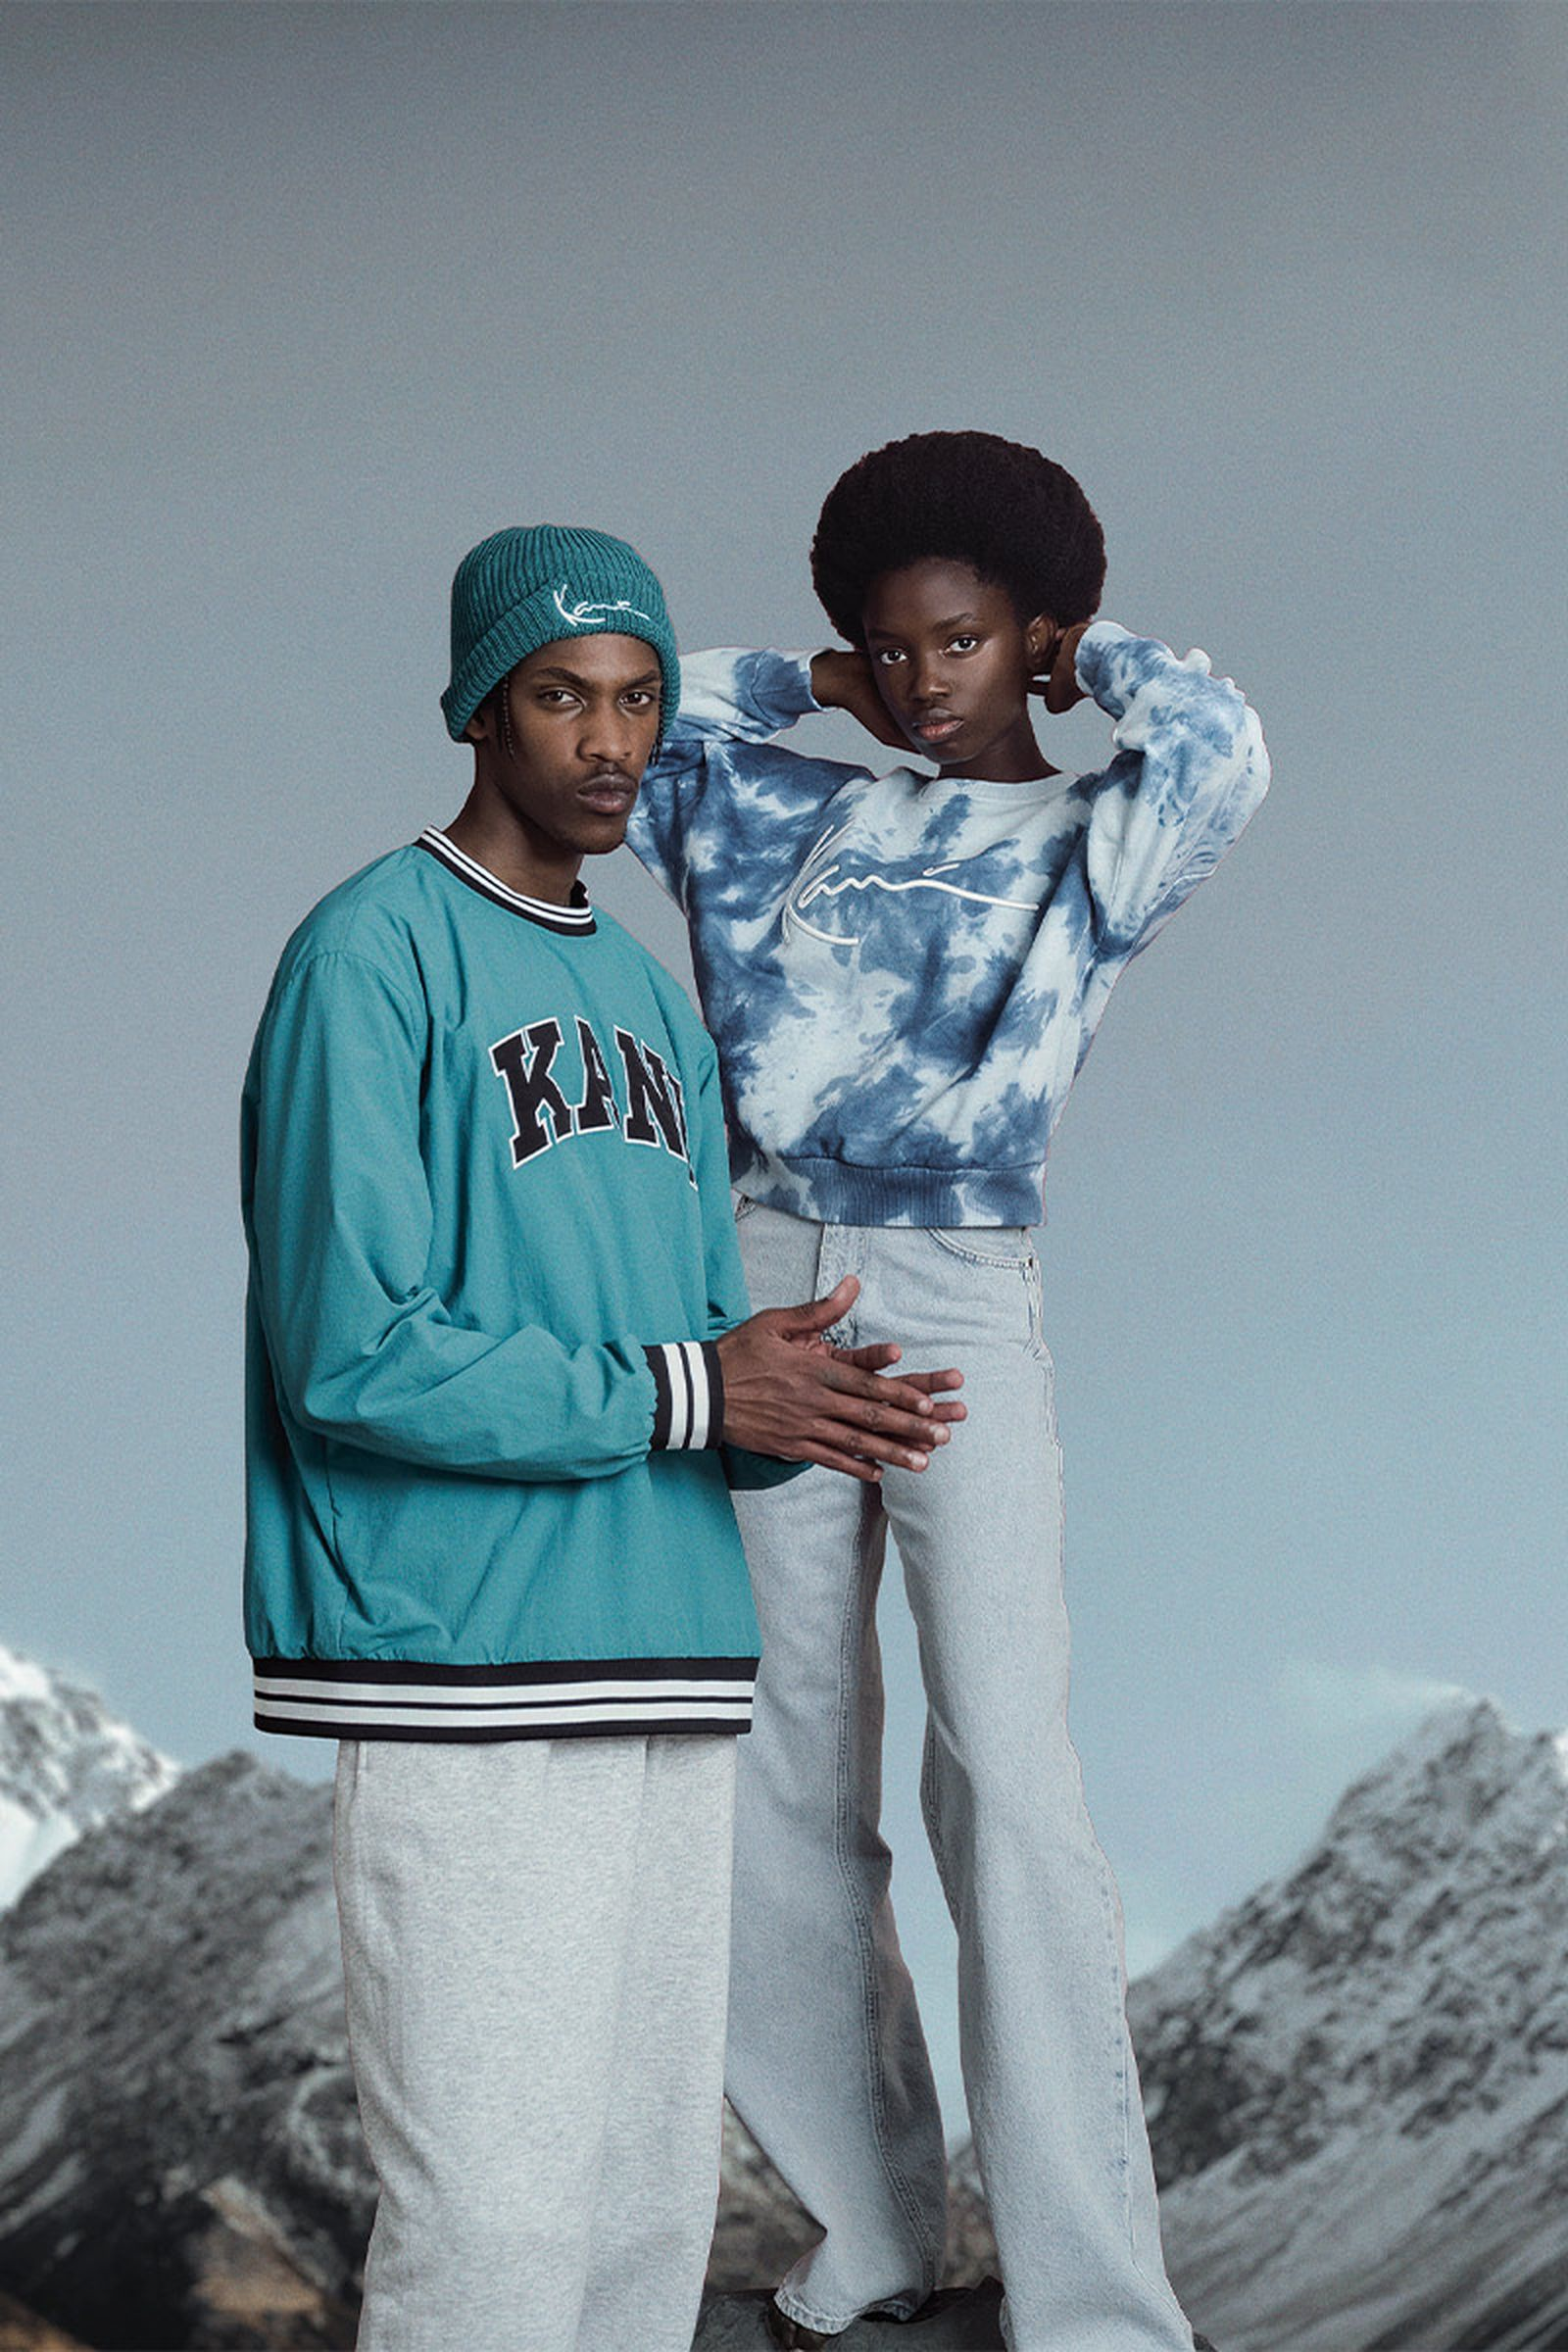 karl-kani-aw20-new-collection-release-7